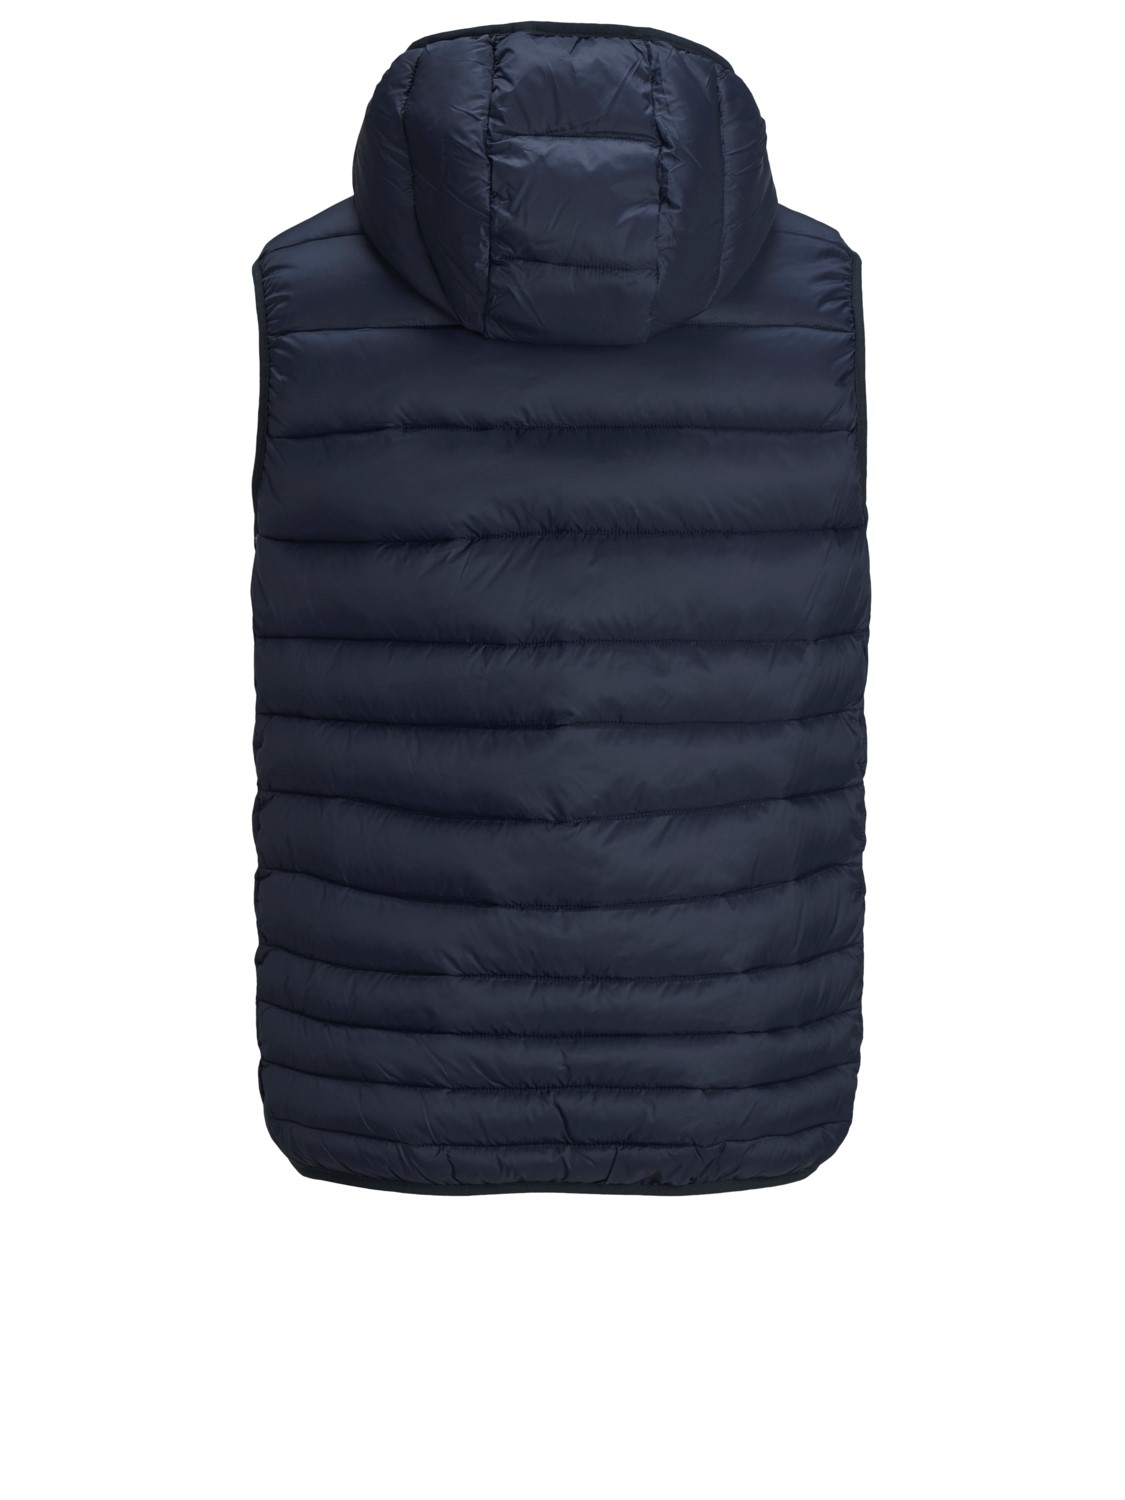 Mens-Jack-amp-Jones-039-JJE-Bomb-Body-Warmer-039-Hooded-Gillet thumbnail 5